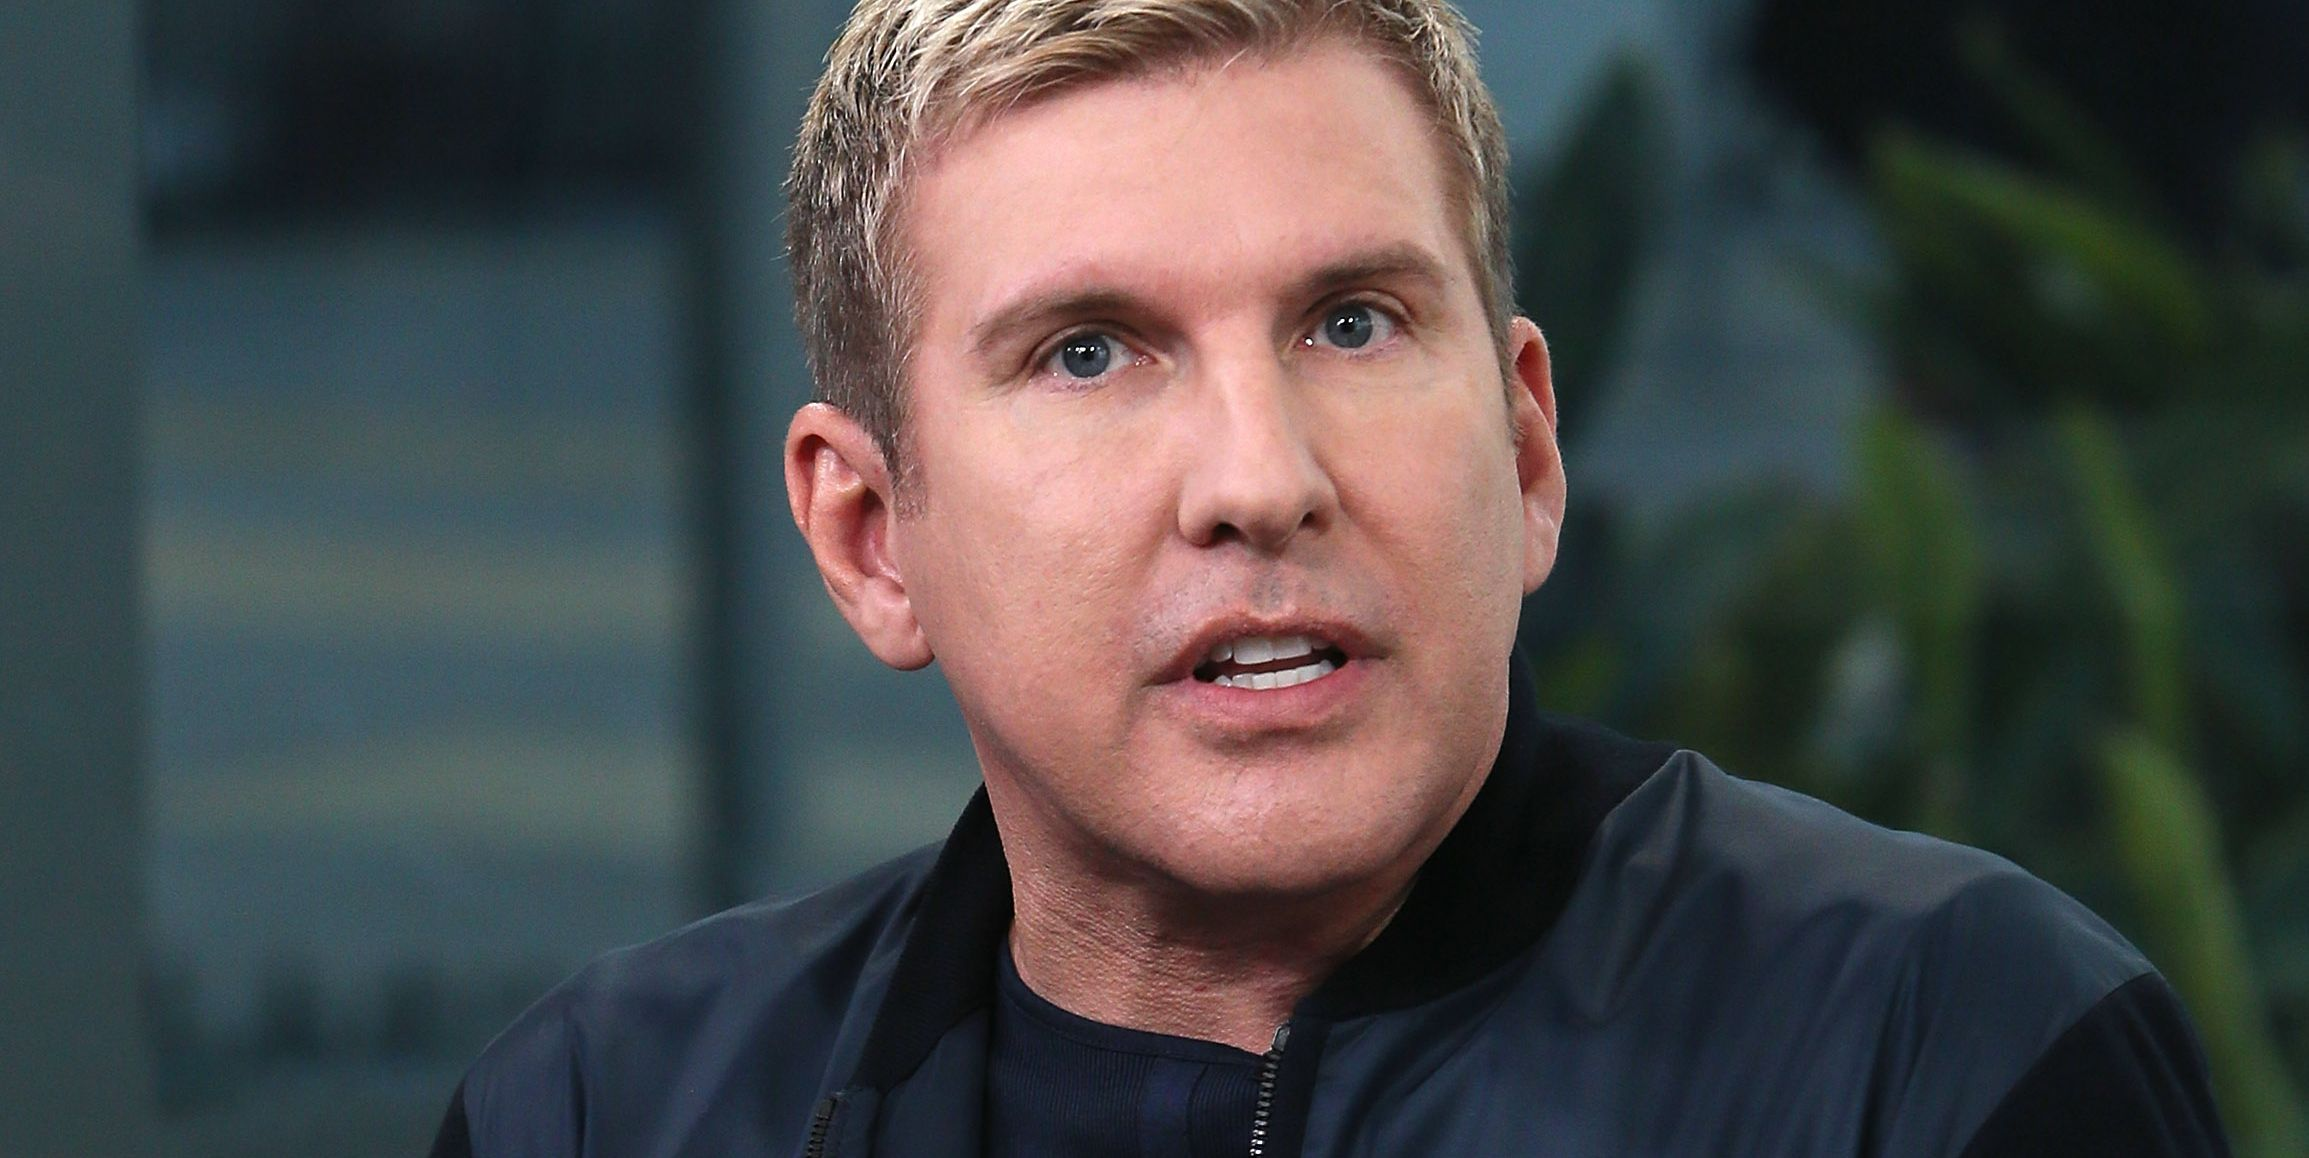 Todd Chrisley's Cryptic Instagram Post About 'Loss' Has Fans Worried About His Family